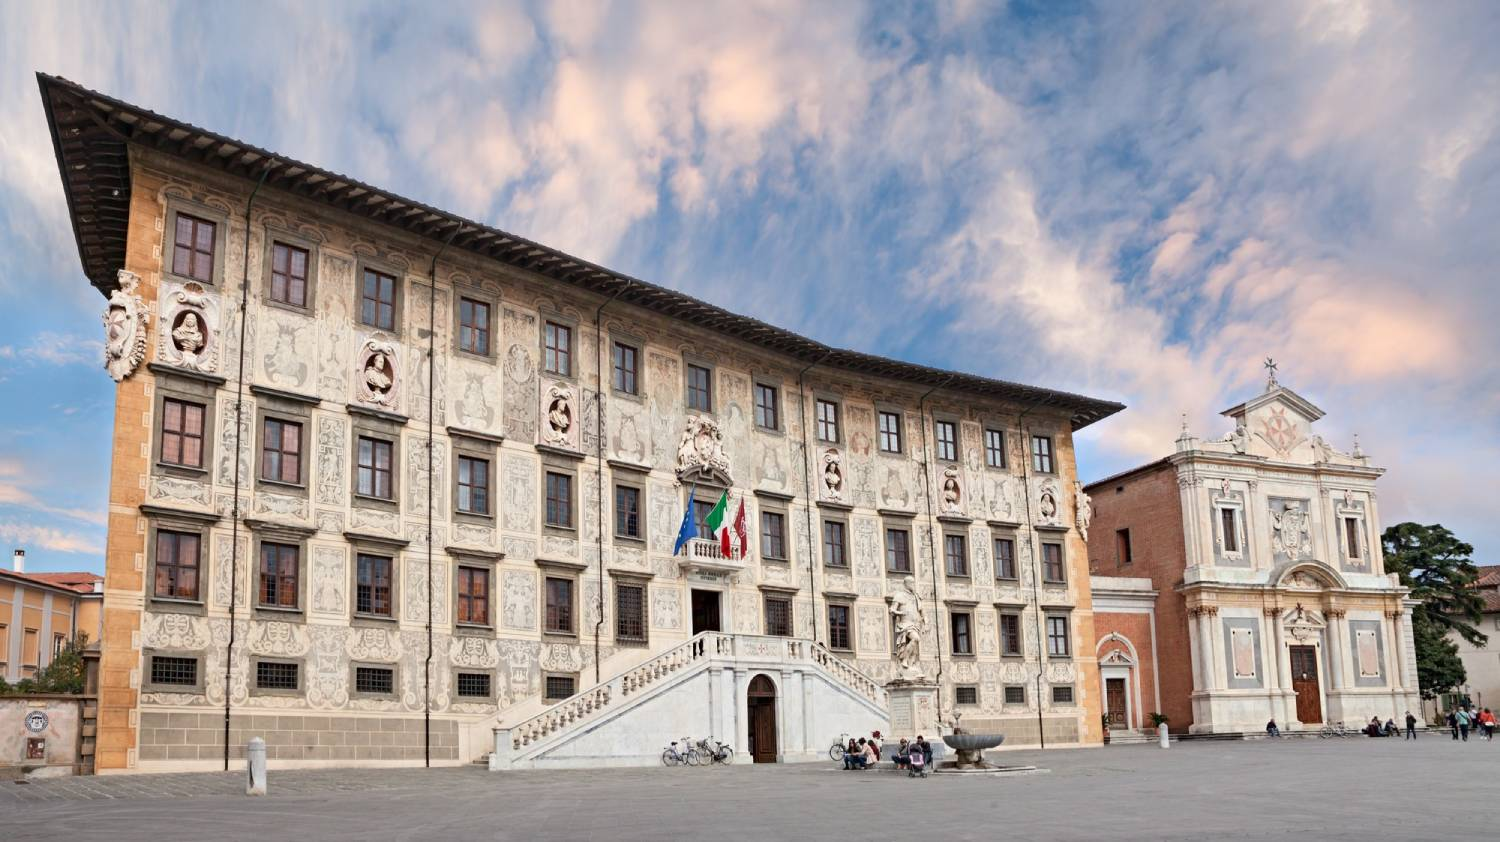 Knights' Square (Piazza dei Cavalieri) - Things To Do In Pisa